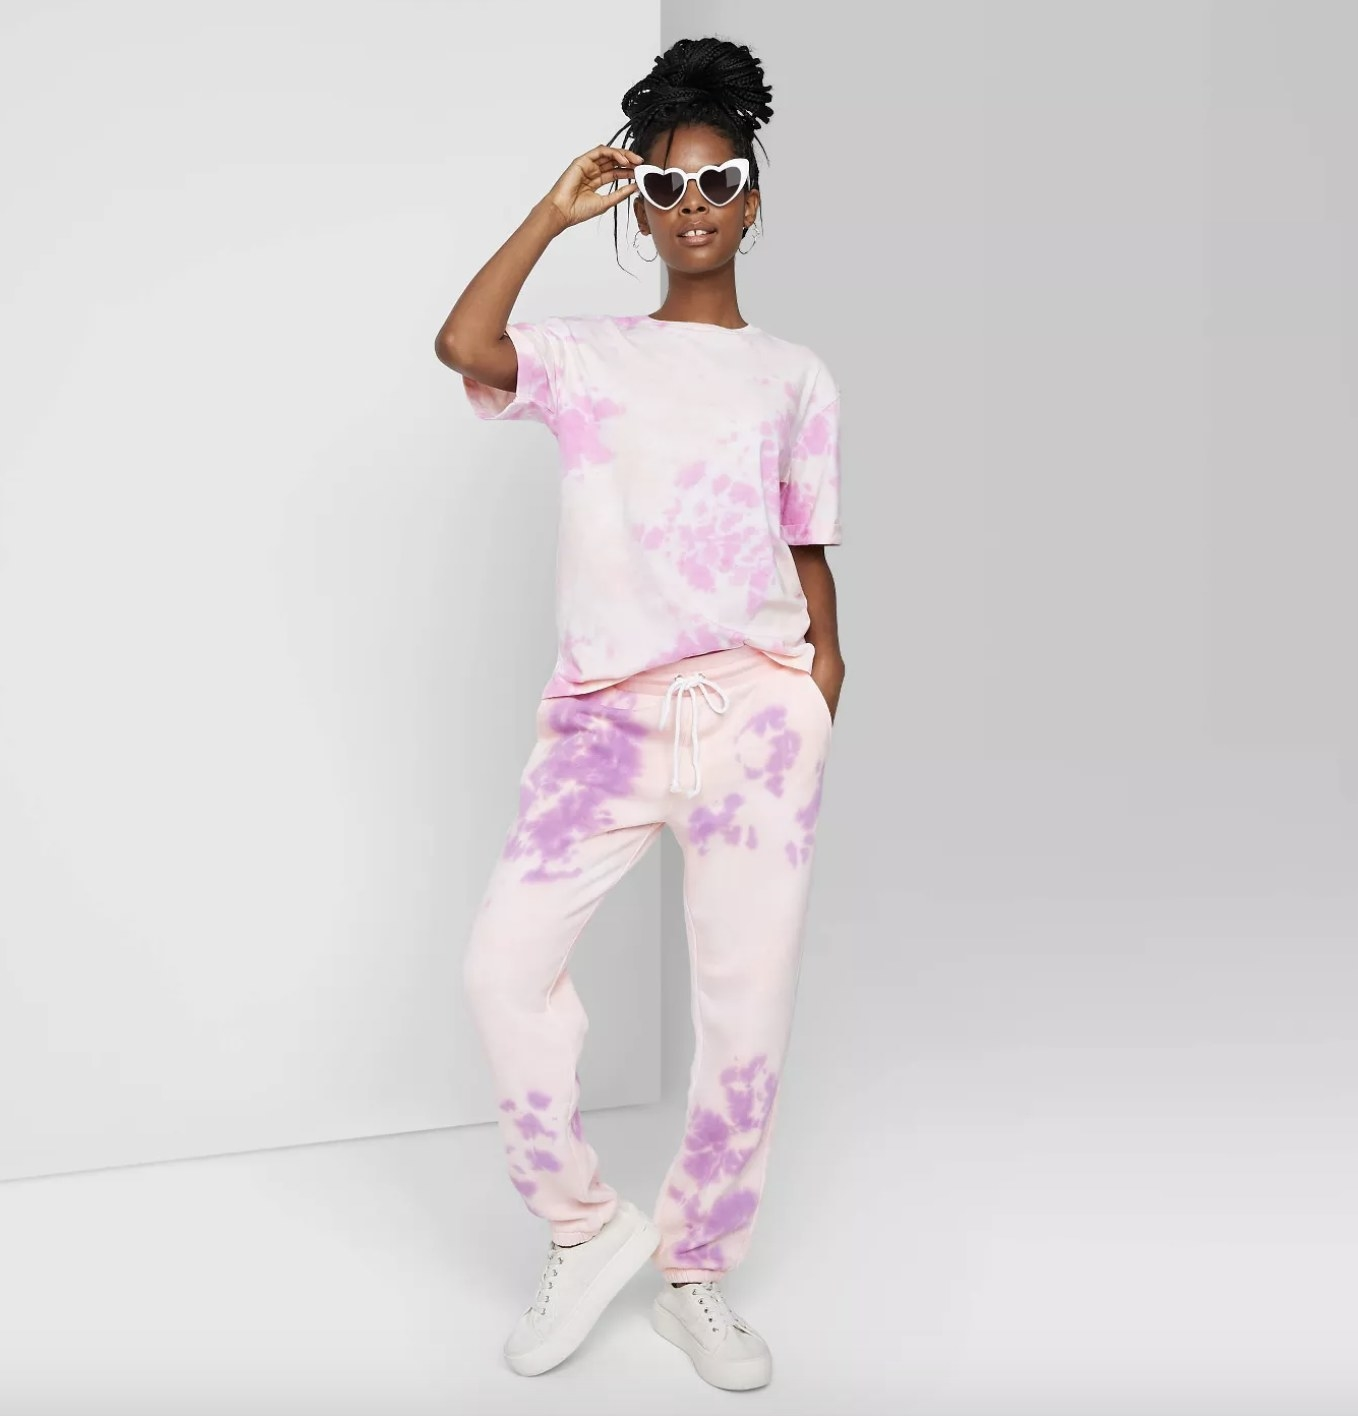 the jogger sweatpants in purple tie dye